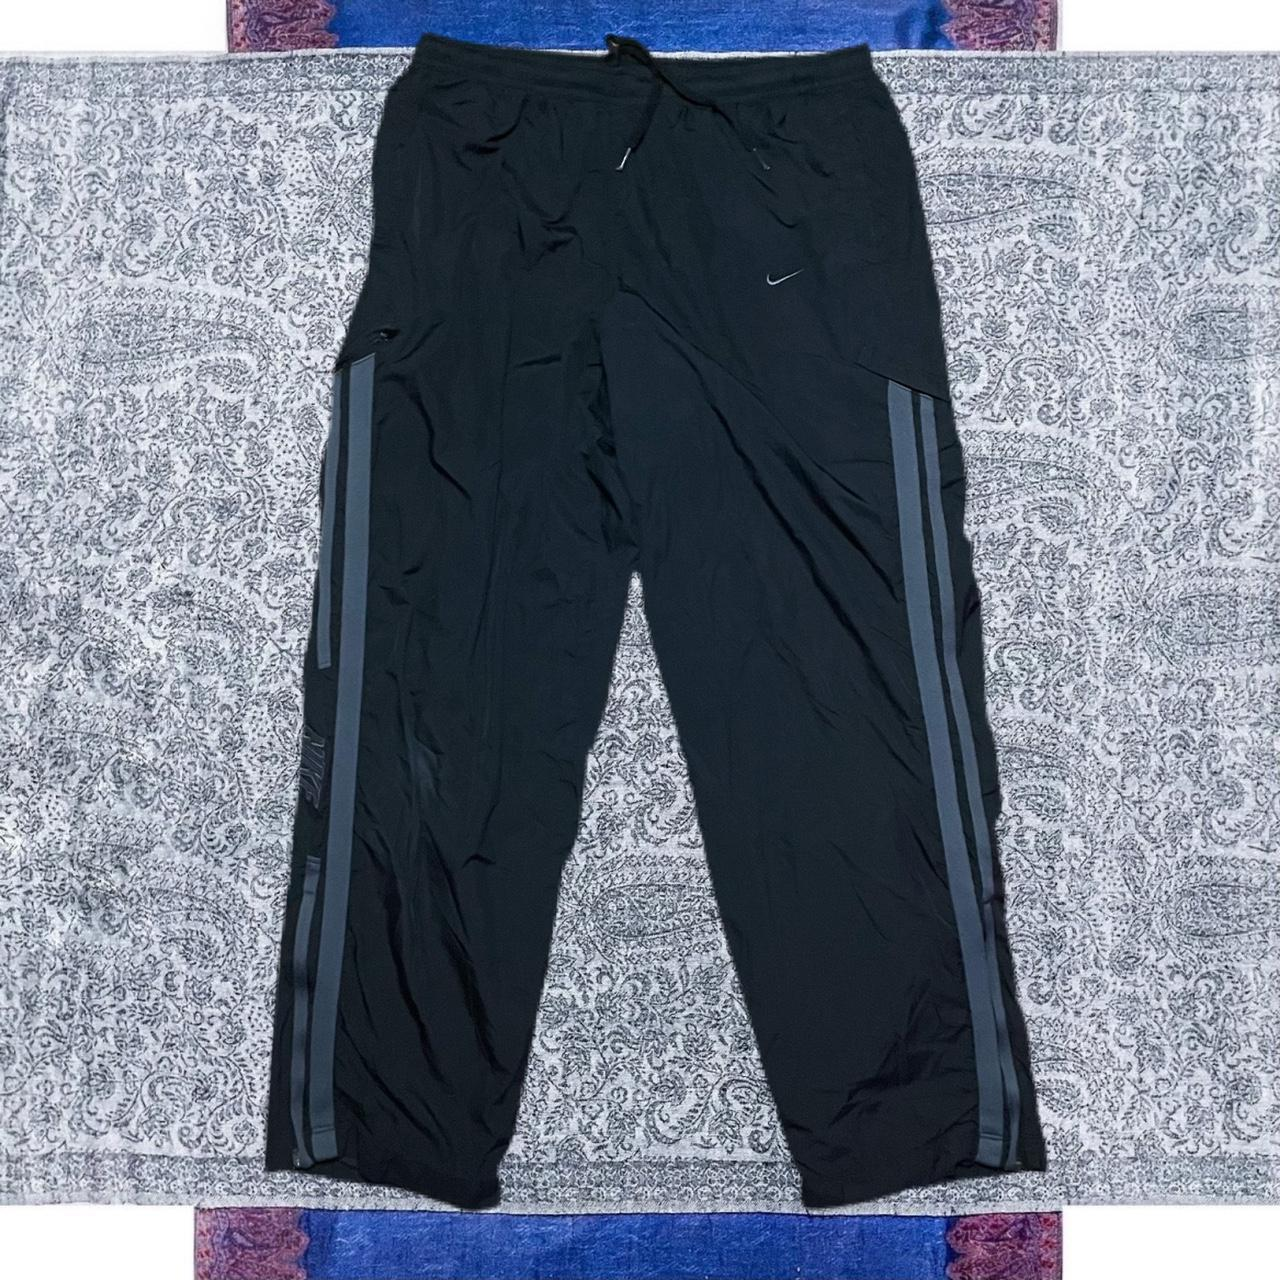 Product Image 1 - Nike Sweatpants   - Good condition! -